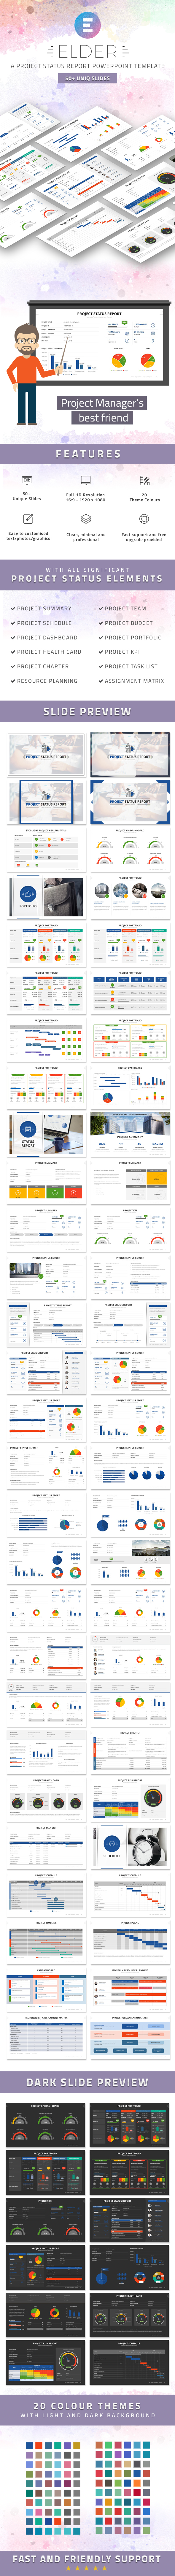 Elder – A Project Status Report PowerPoint Template - PowerPoint Templates Presentation Templates